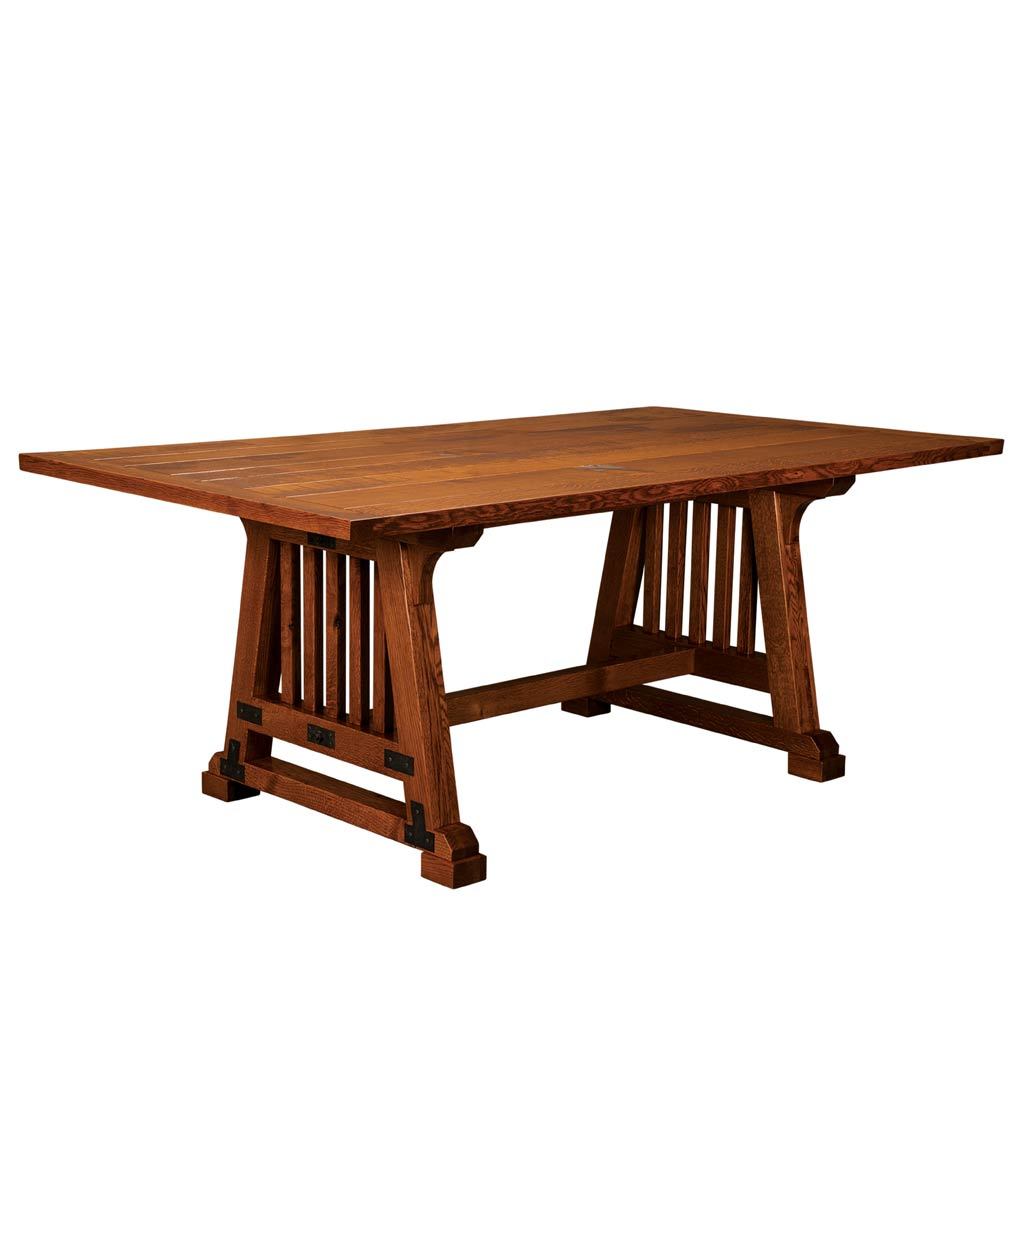 Image Result For Amish Made Dining Room Tables And Chairs